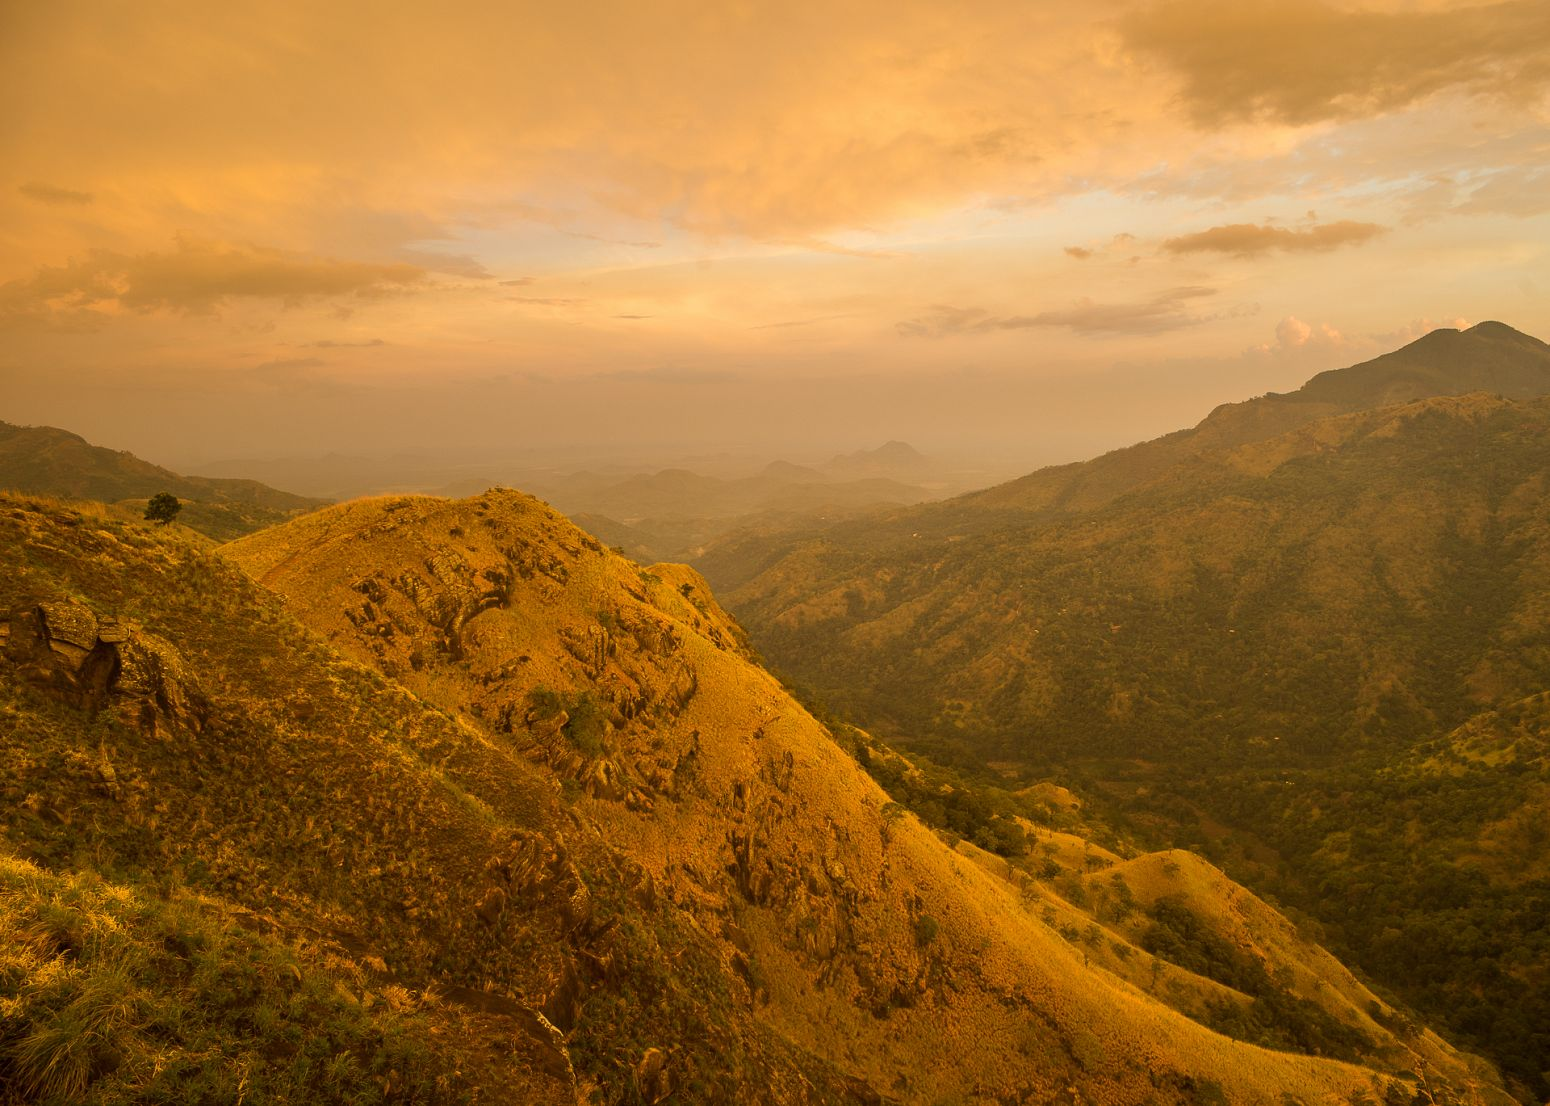 Sunset from Little Adam's Peak, Ella, Sri Lanka